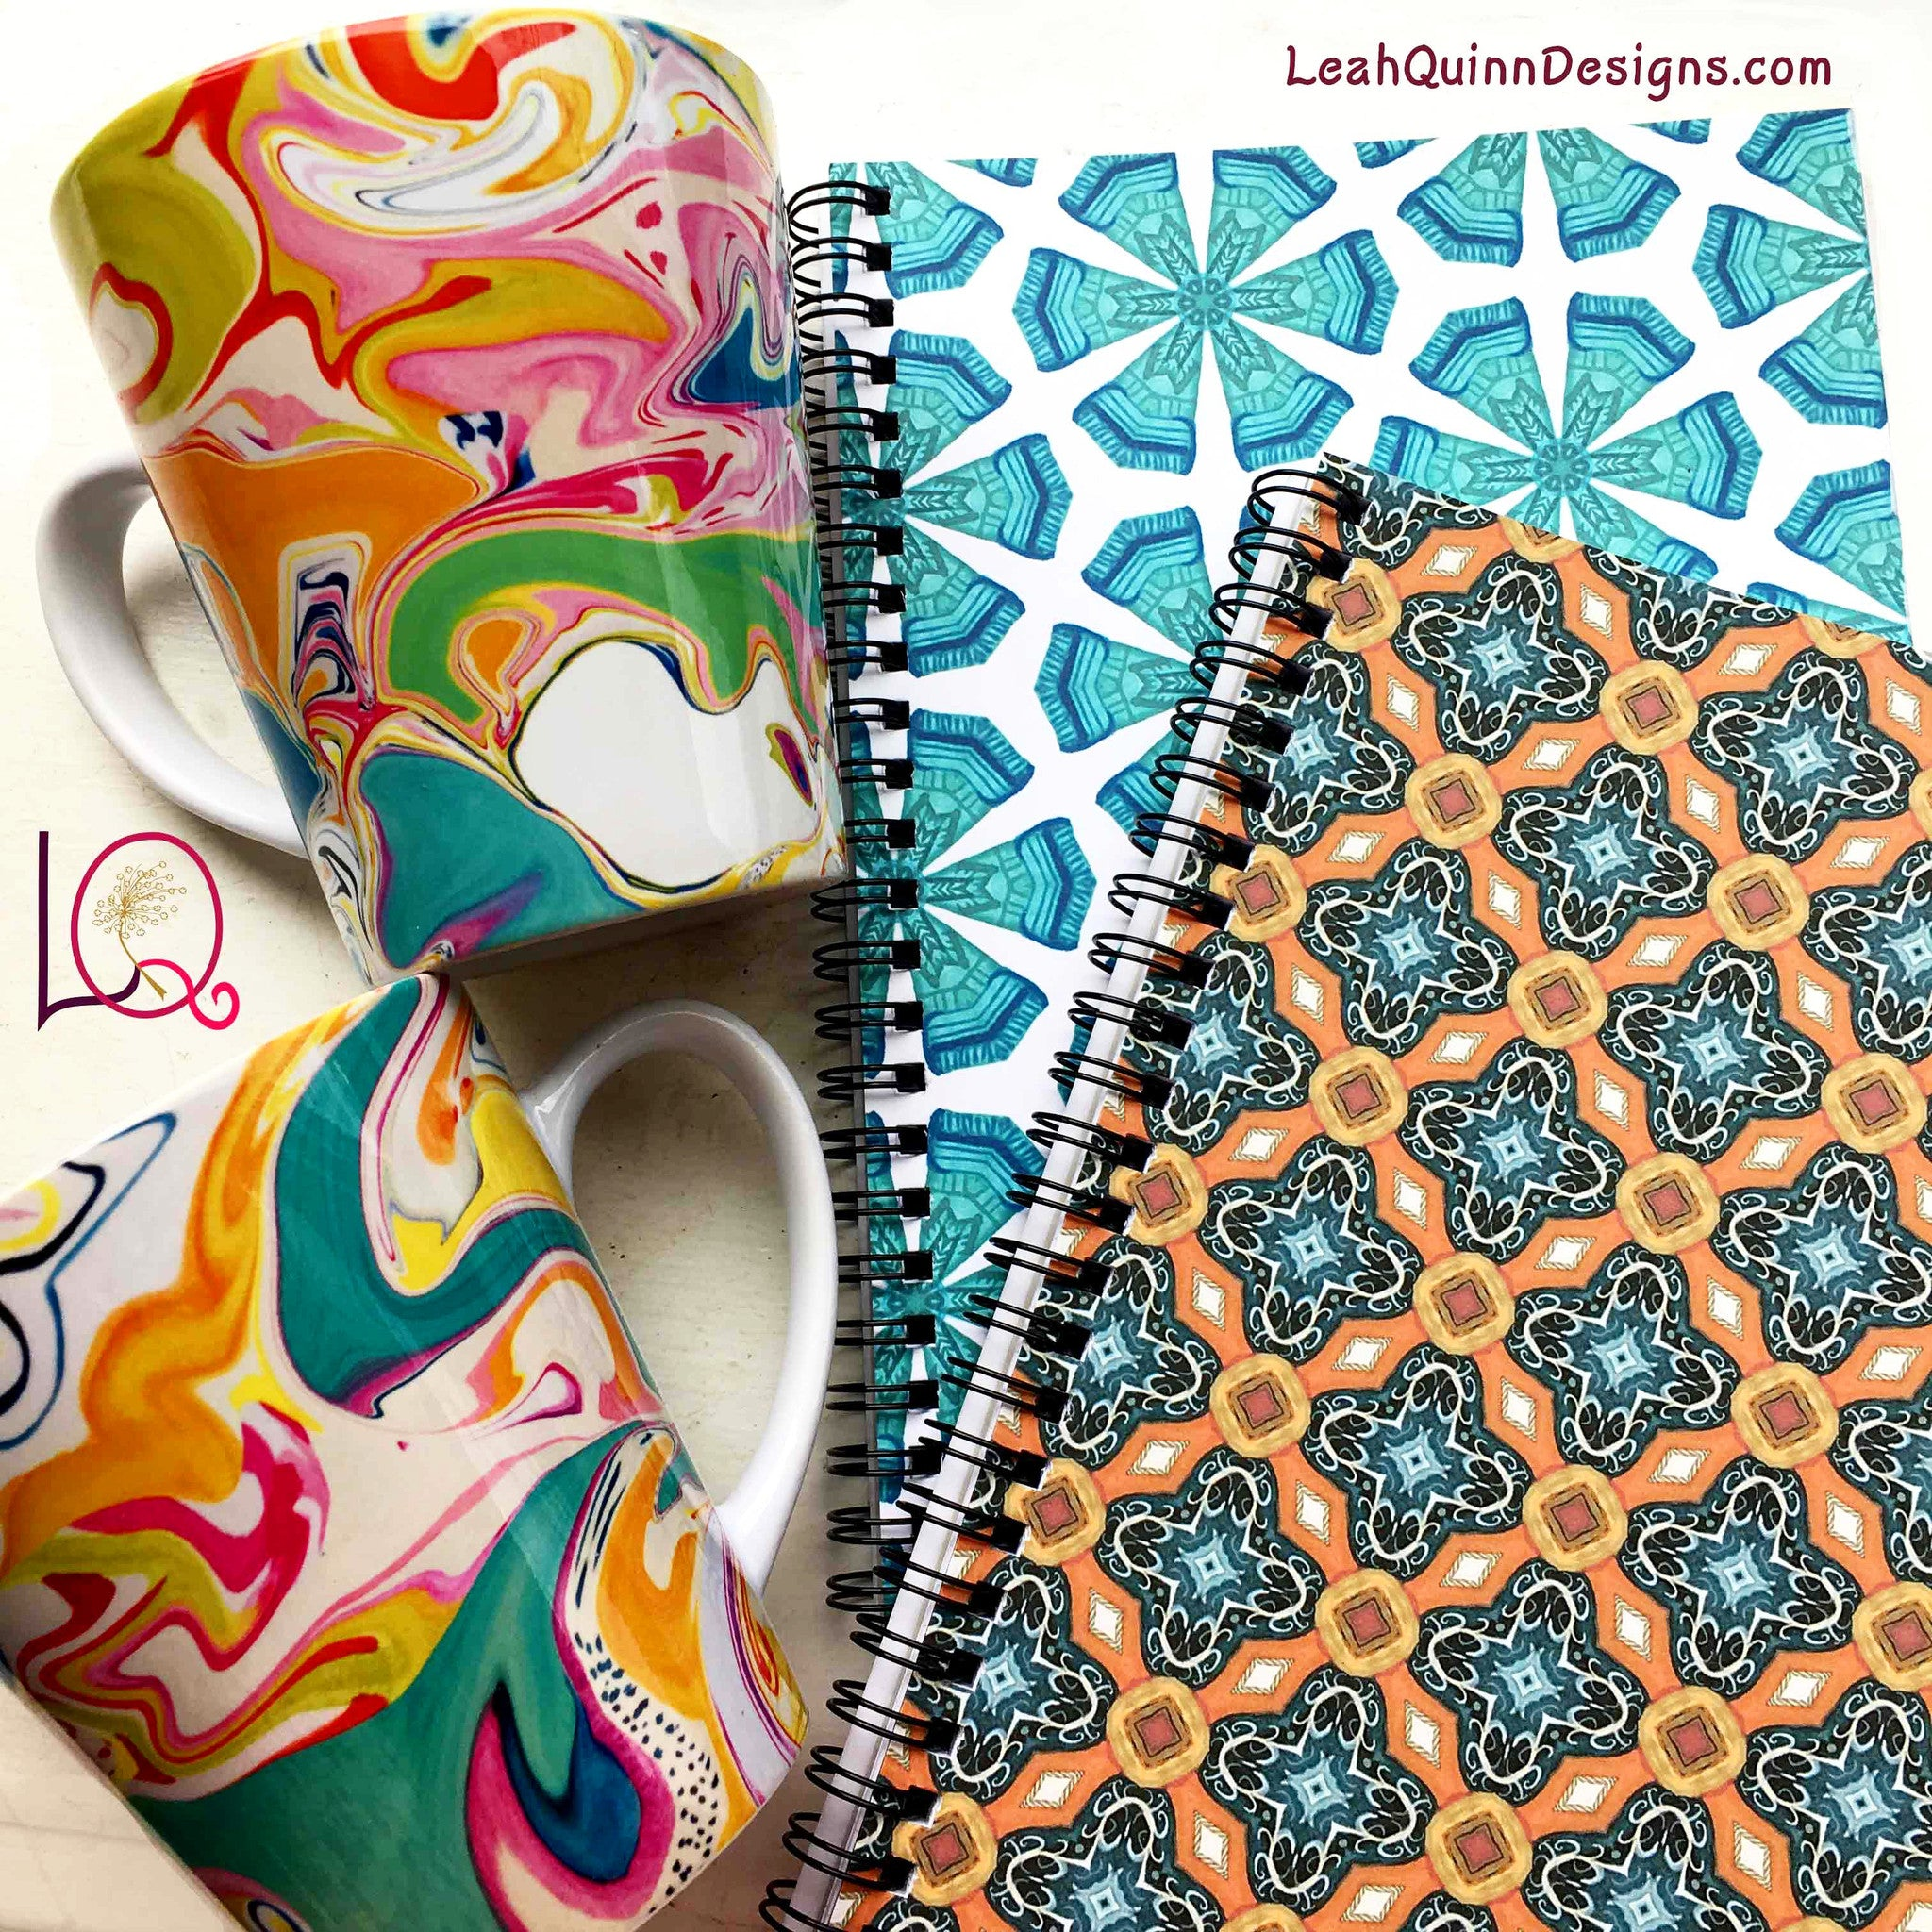 Apparel & Home Decor Designers Collection by Leah Quinn